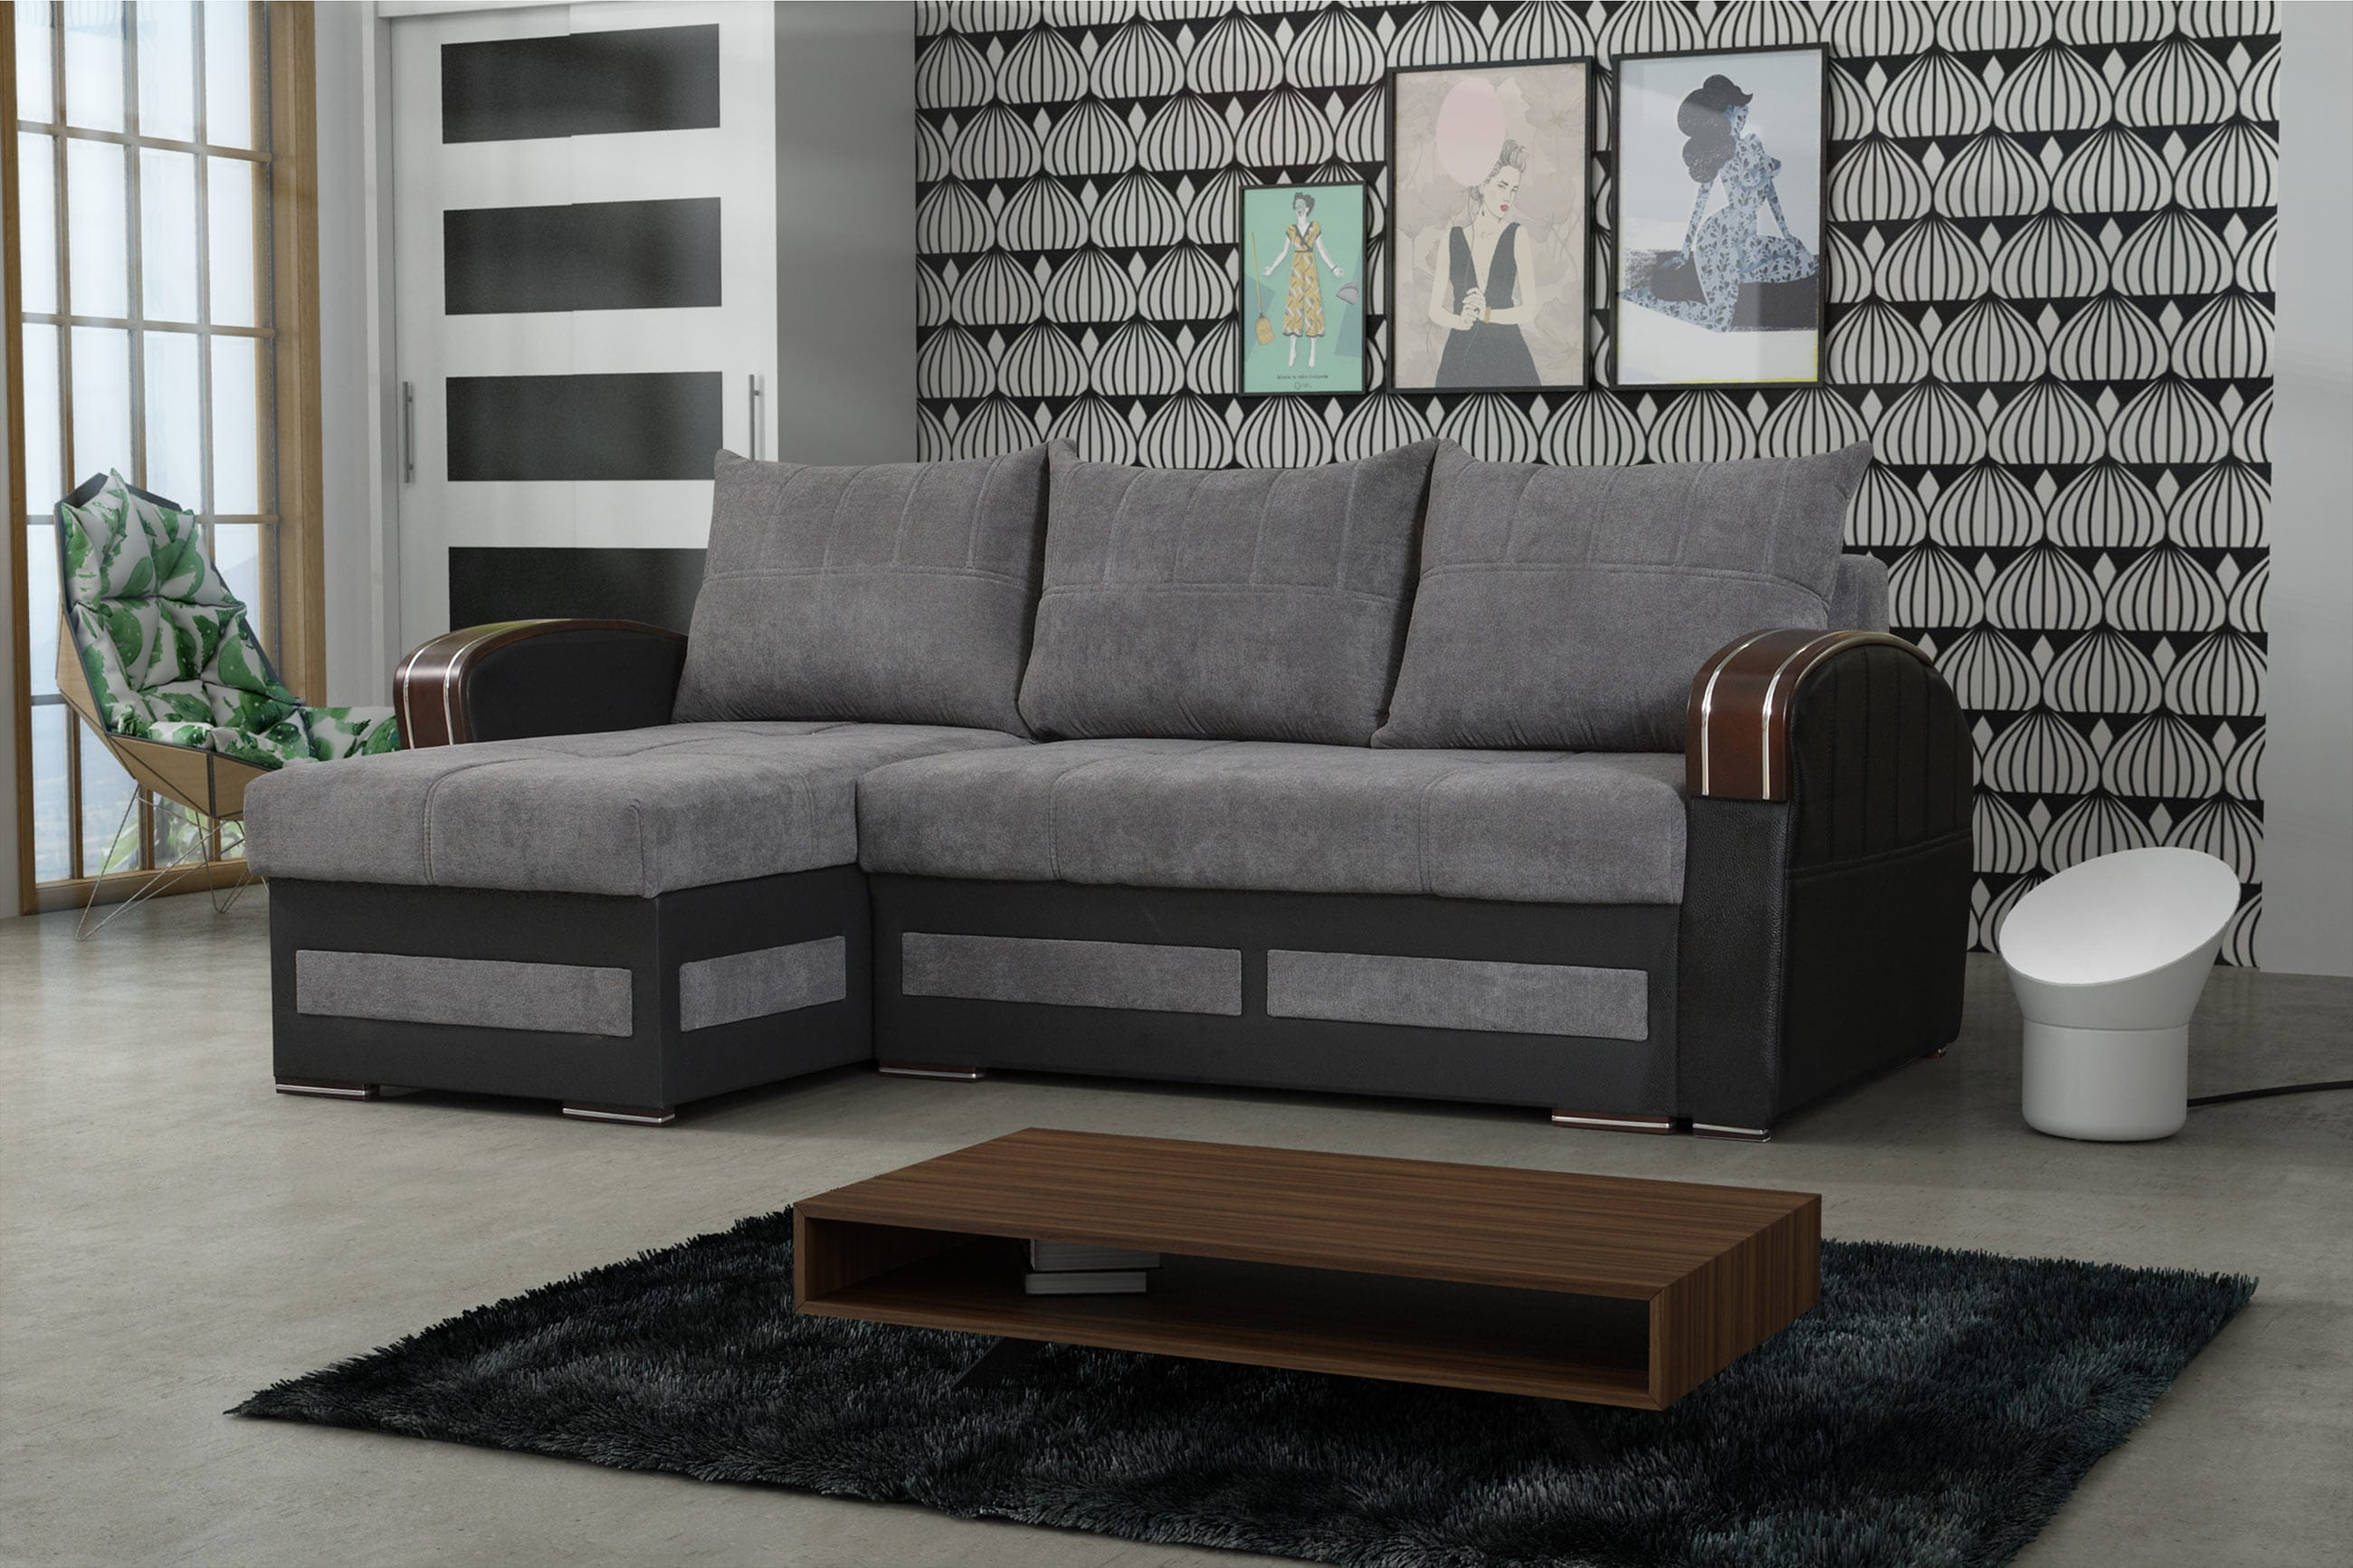 furniture sleeper parker queen durango slate sectional sleepers sofas